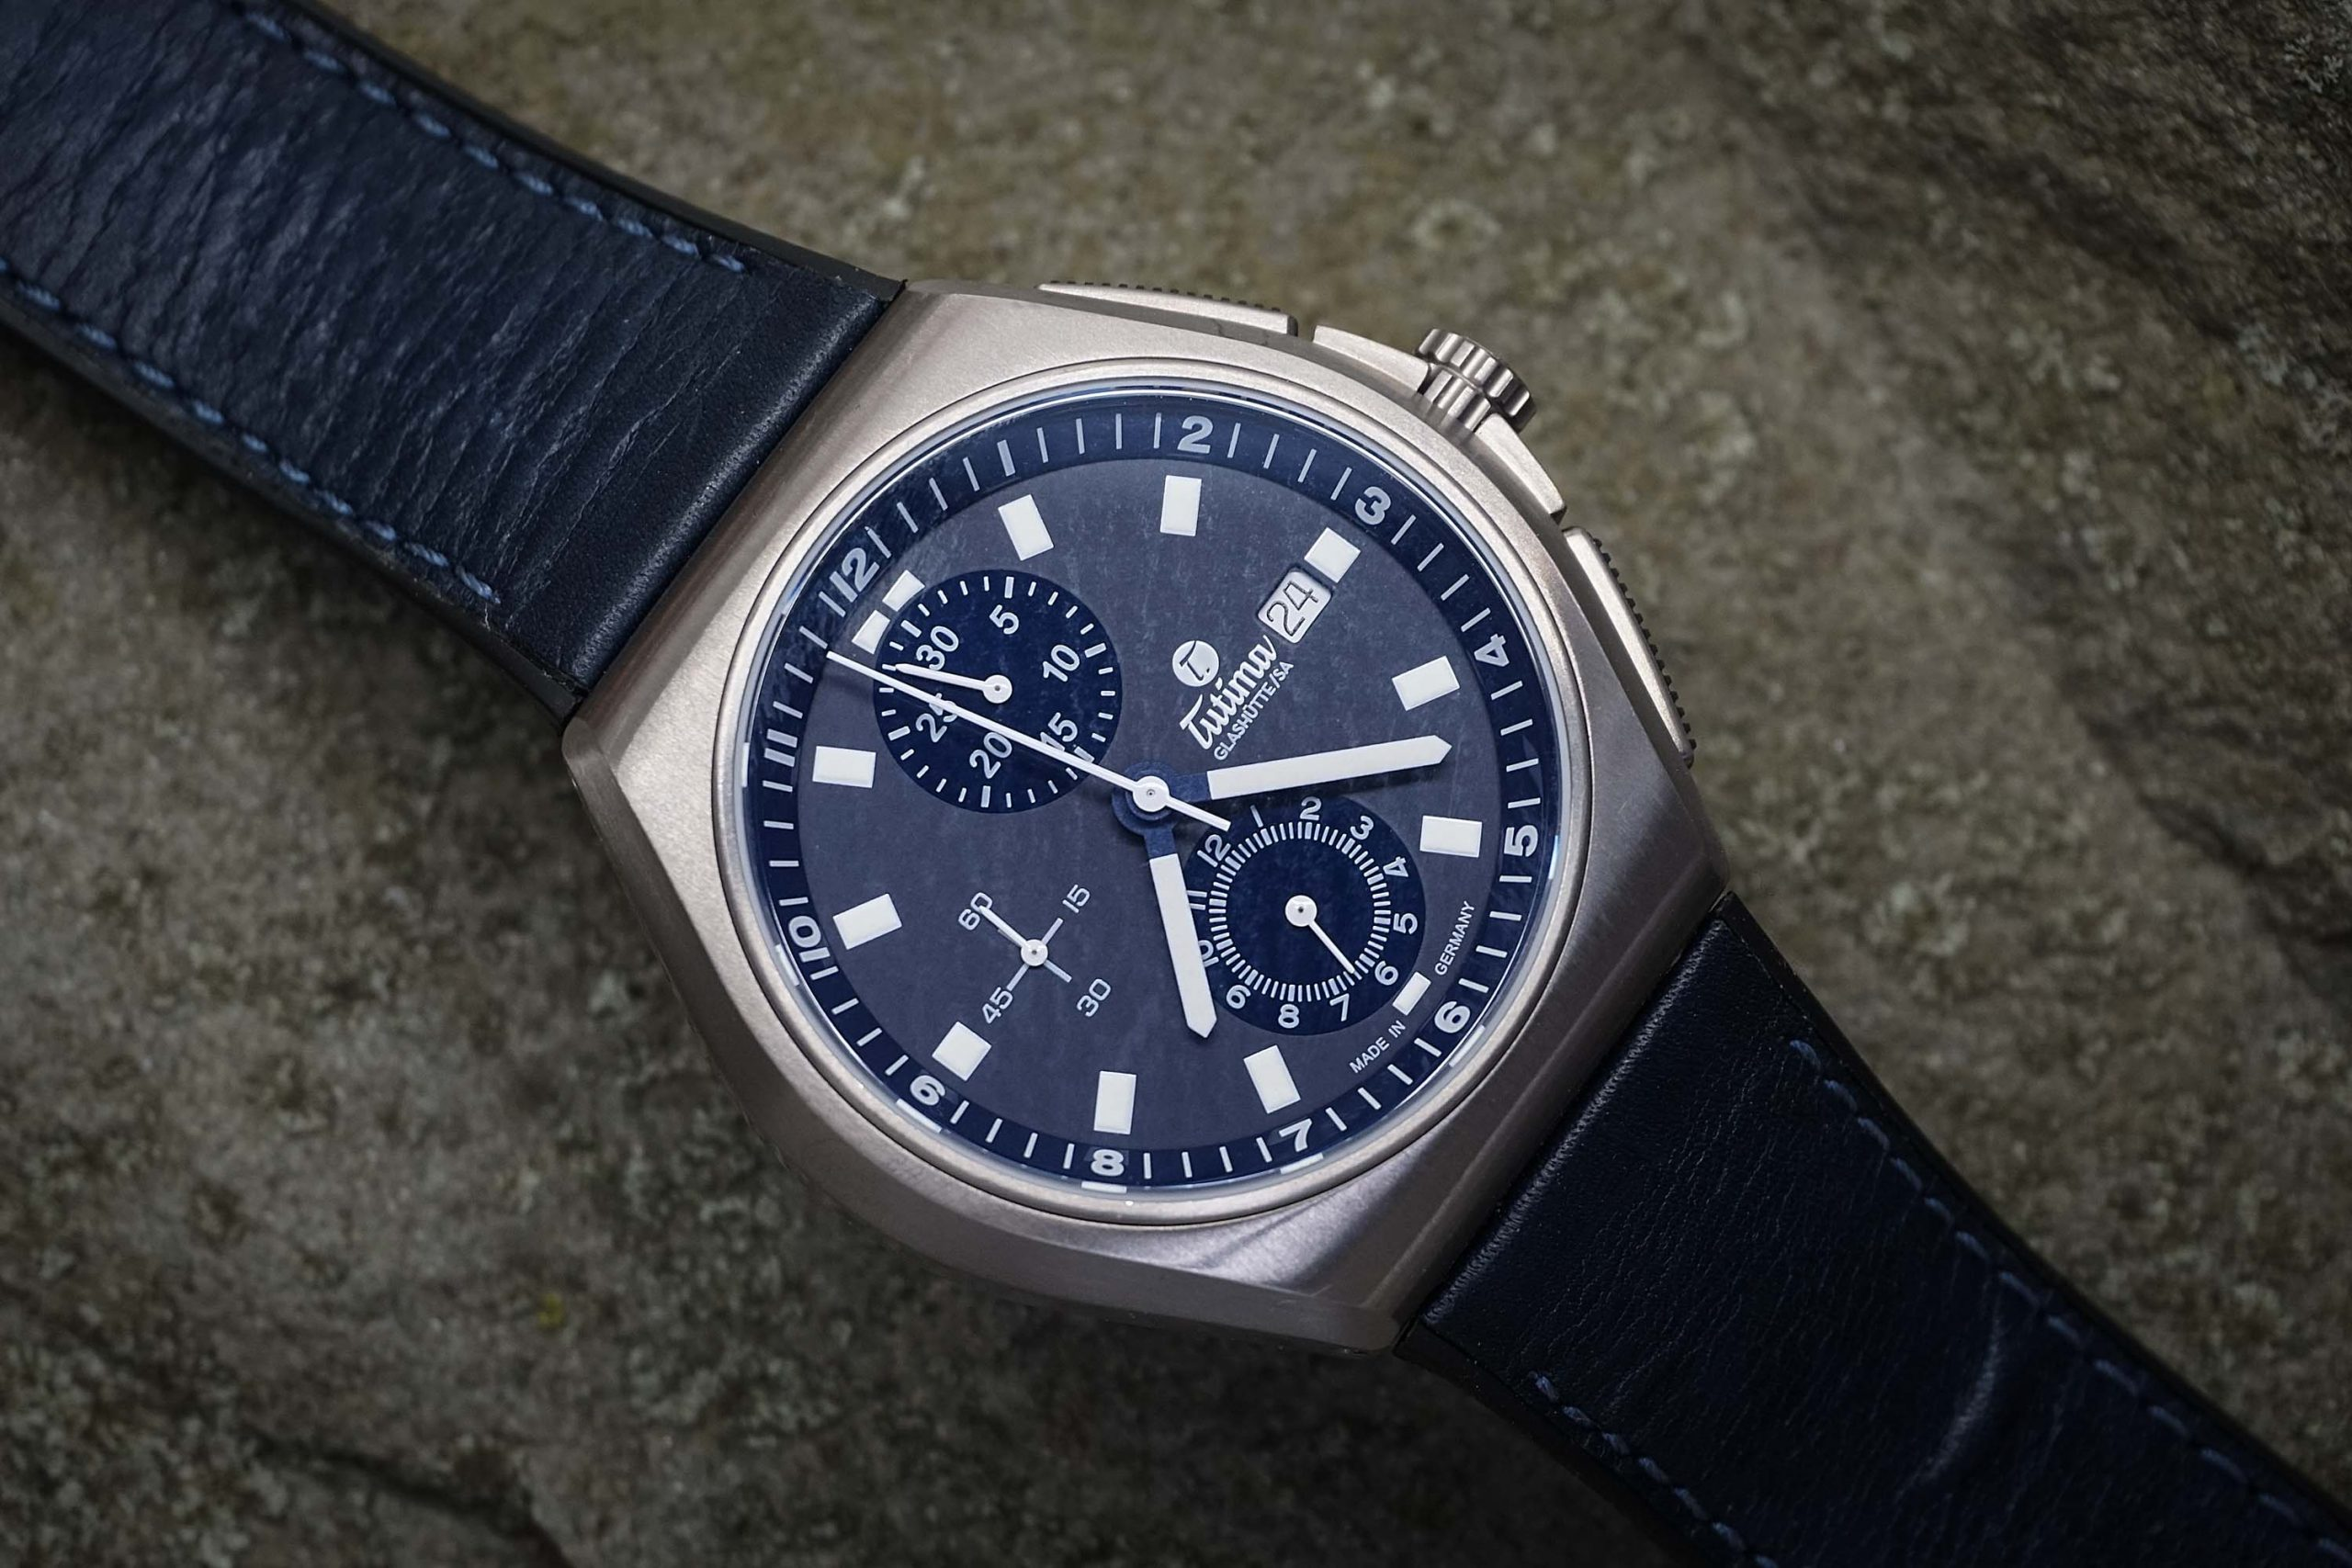 Hands-On Review – Tutima M2 Coastline Chronograph 6430-06